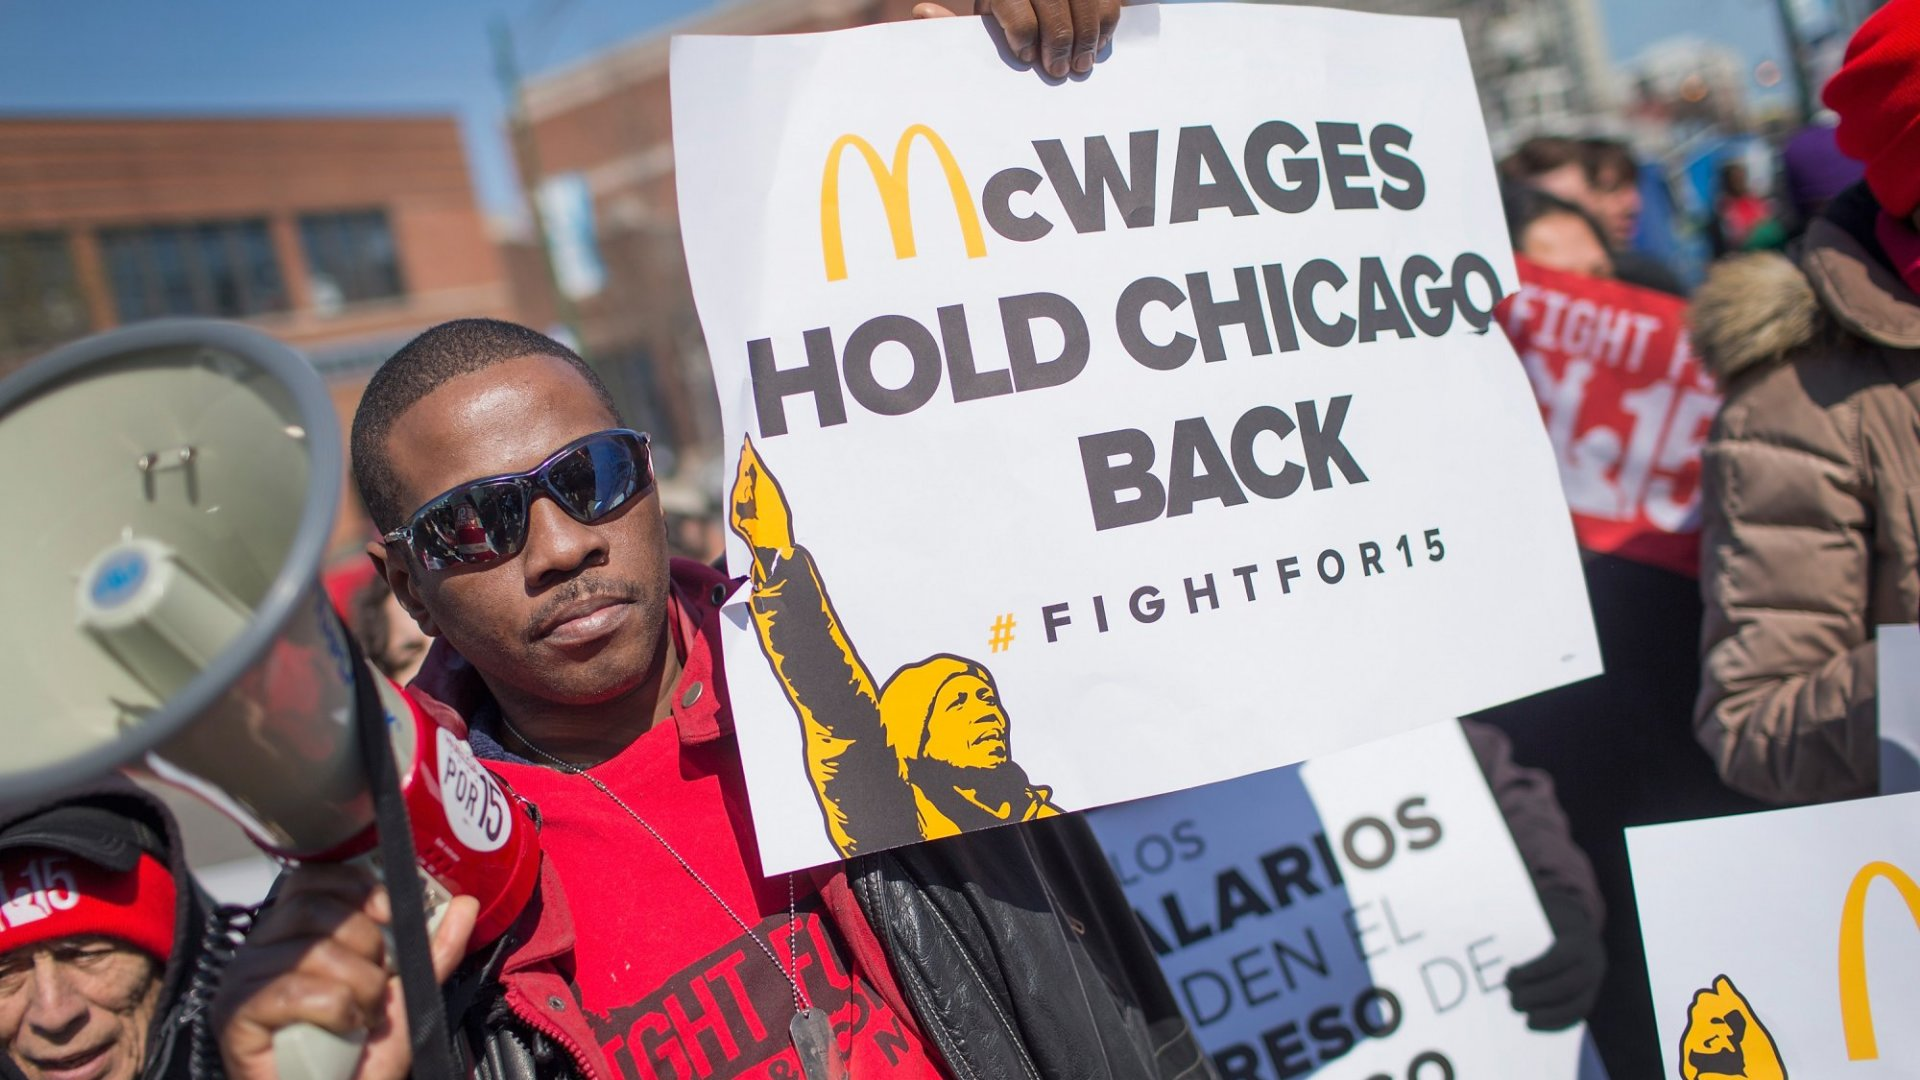 As a Business Owner, I Opposed a Higher Minimum Wage. Here's the Study that Changed My Mind